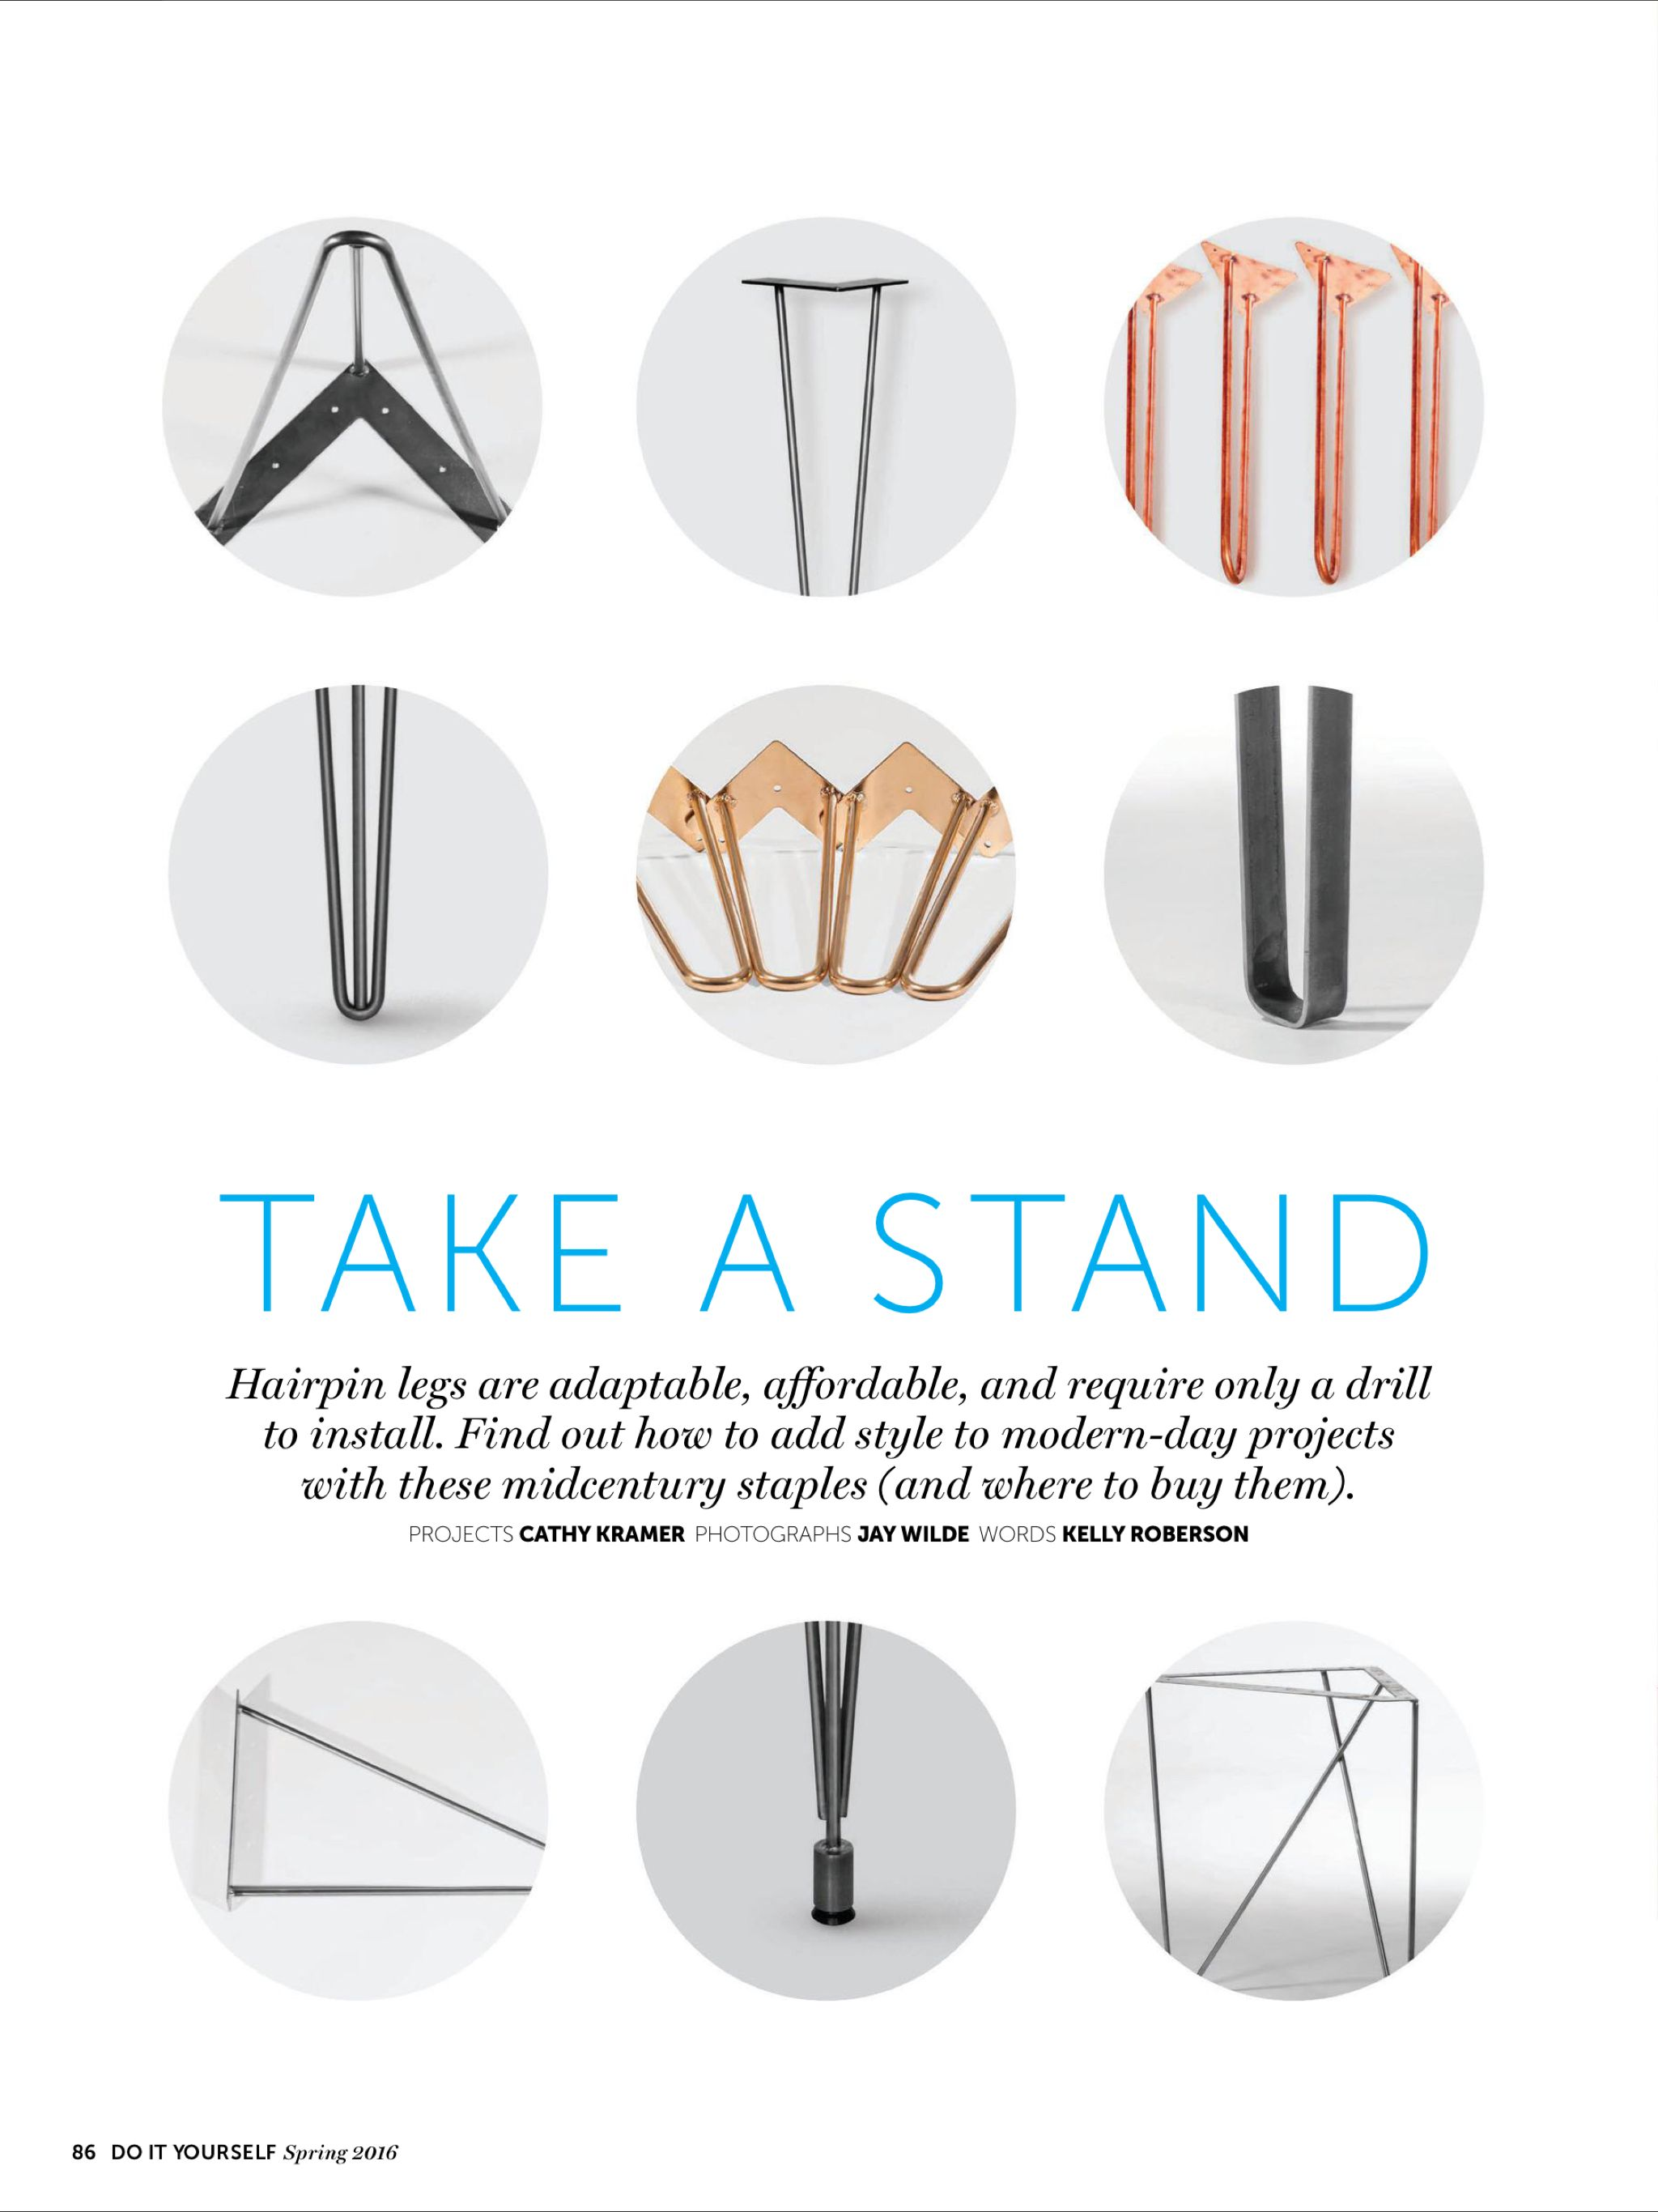 Take a stand from do it yourself magazine spring 2016 read it on take a stand from do it yourself magazine spring read it on the texture app unlimited access to top magazines solutioingenieria Images